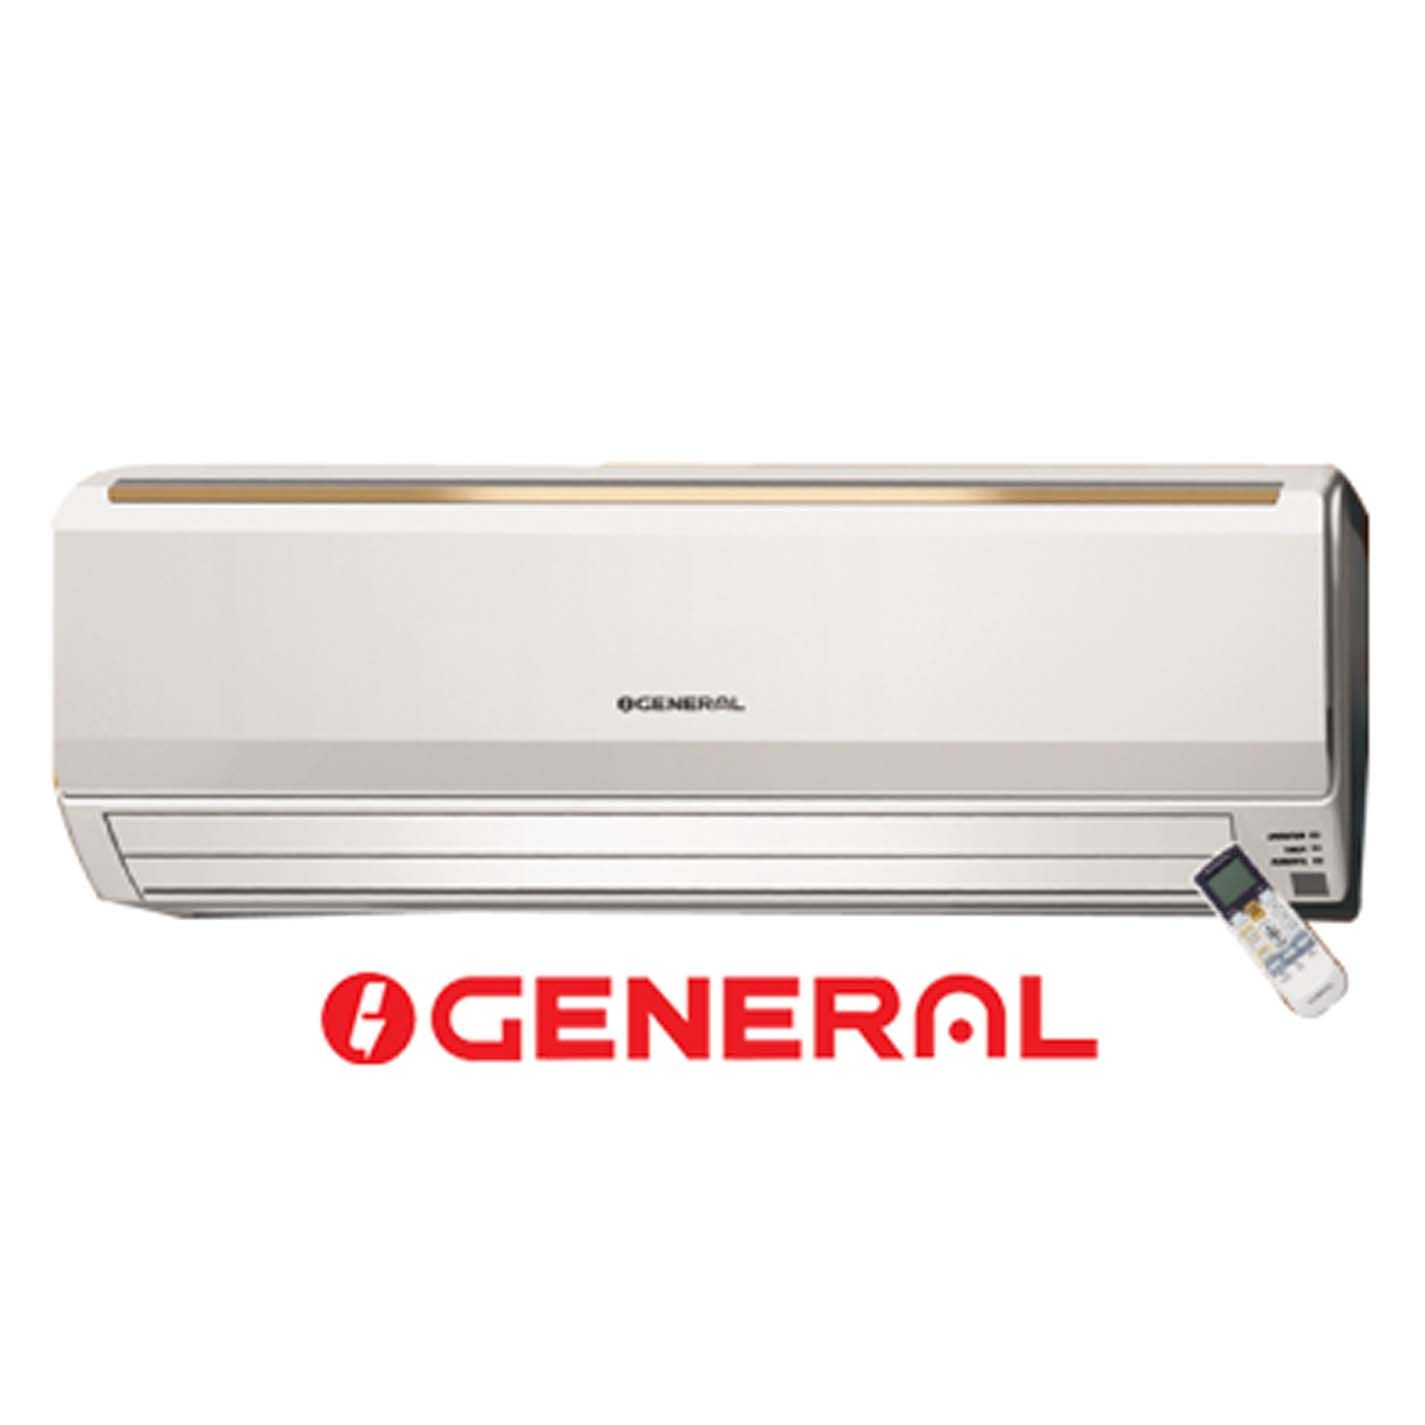 General Asga24aet 2 Ton Air Conditioner Price In Bangladesh Ac Mart Bd Air Conditioner Prices Ac Price Air Cooler